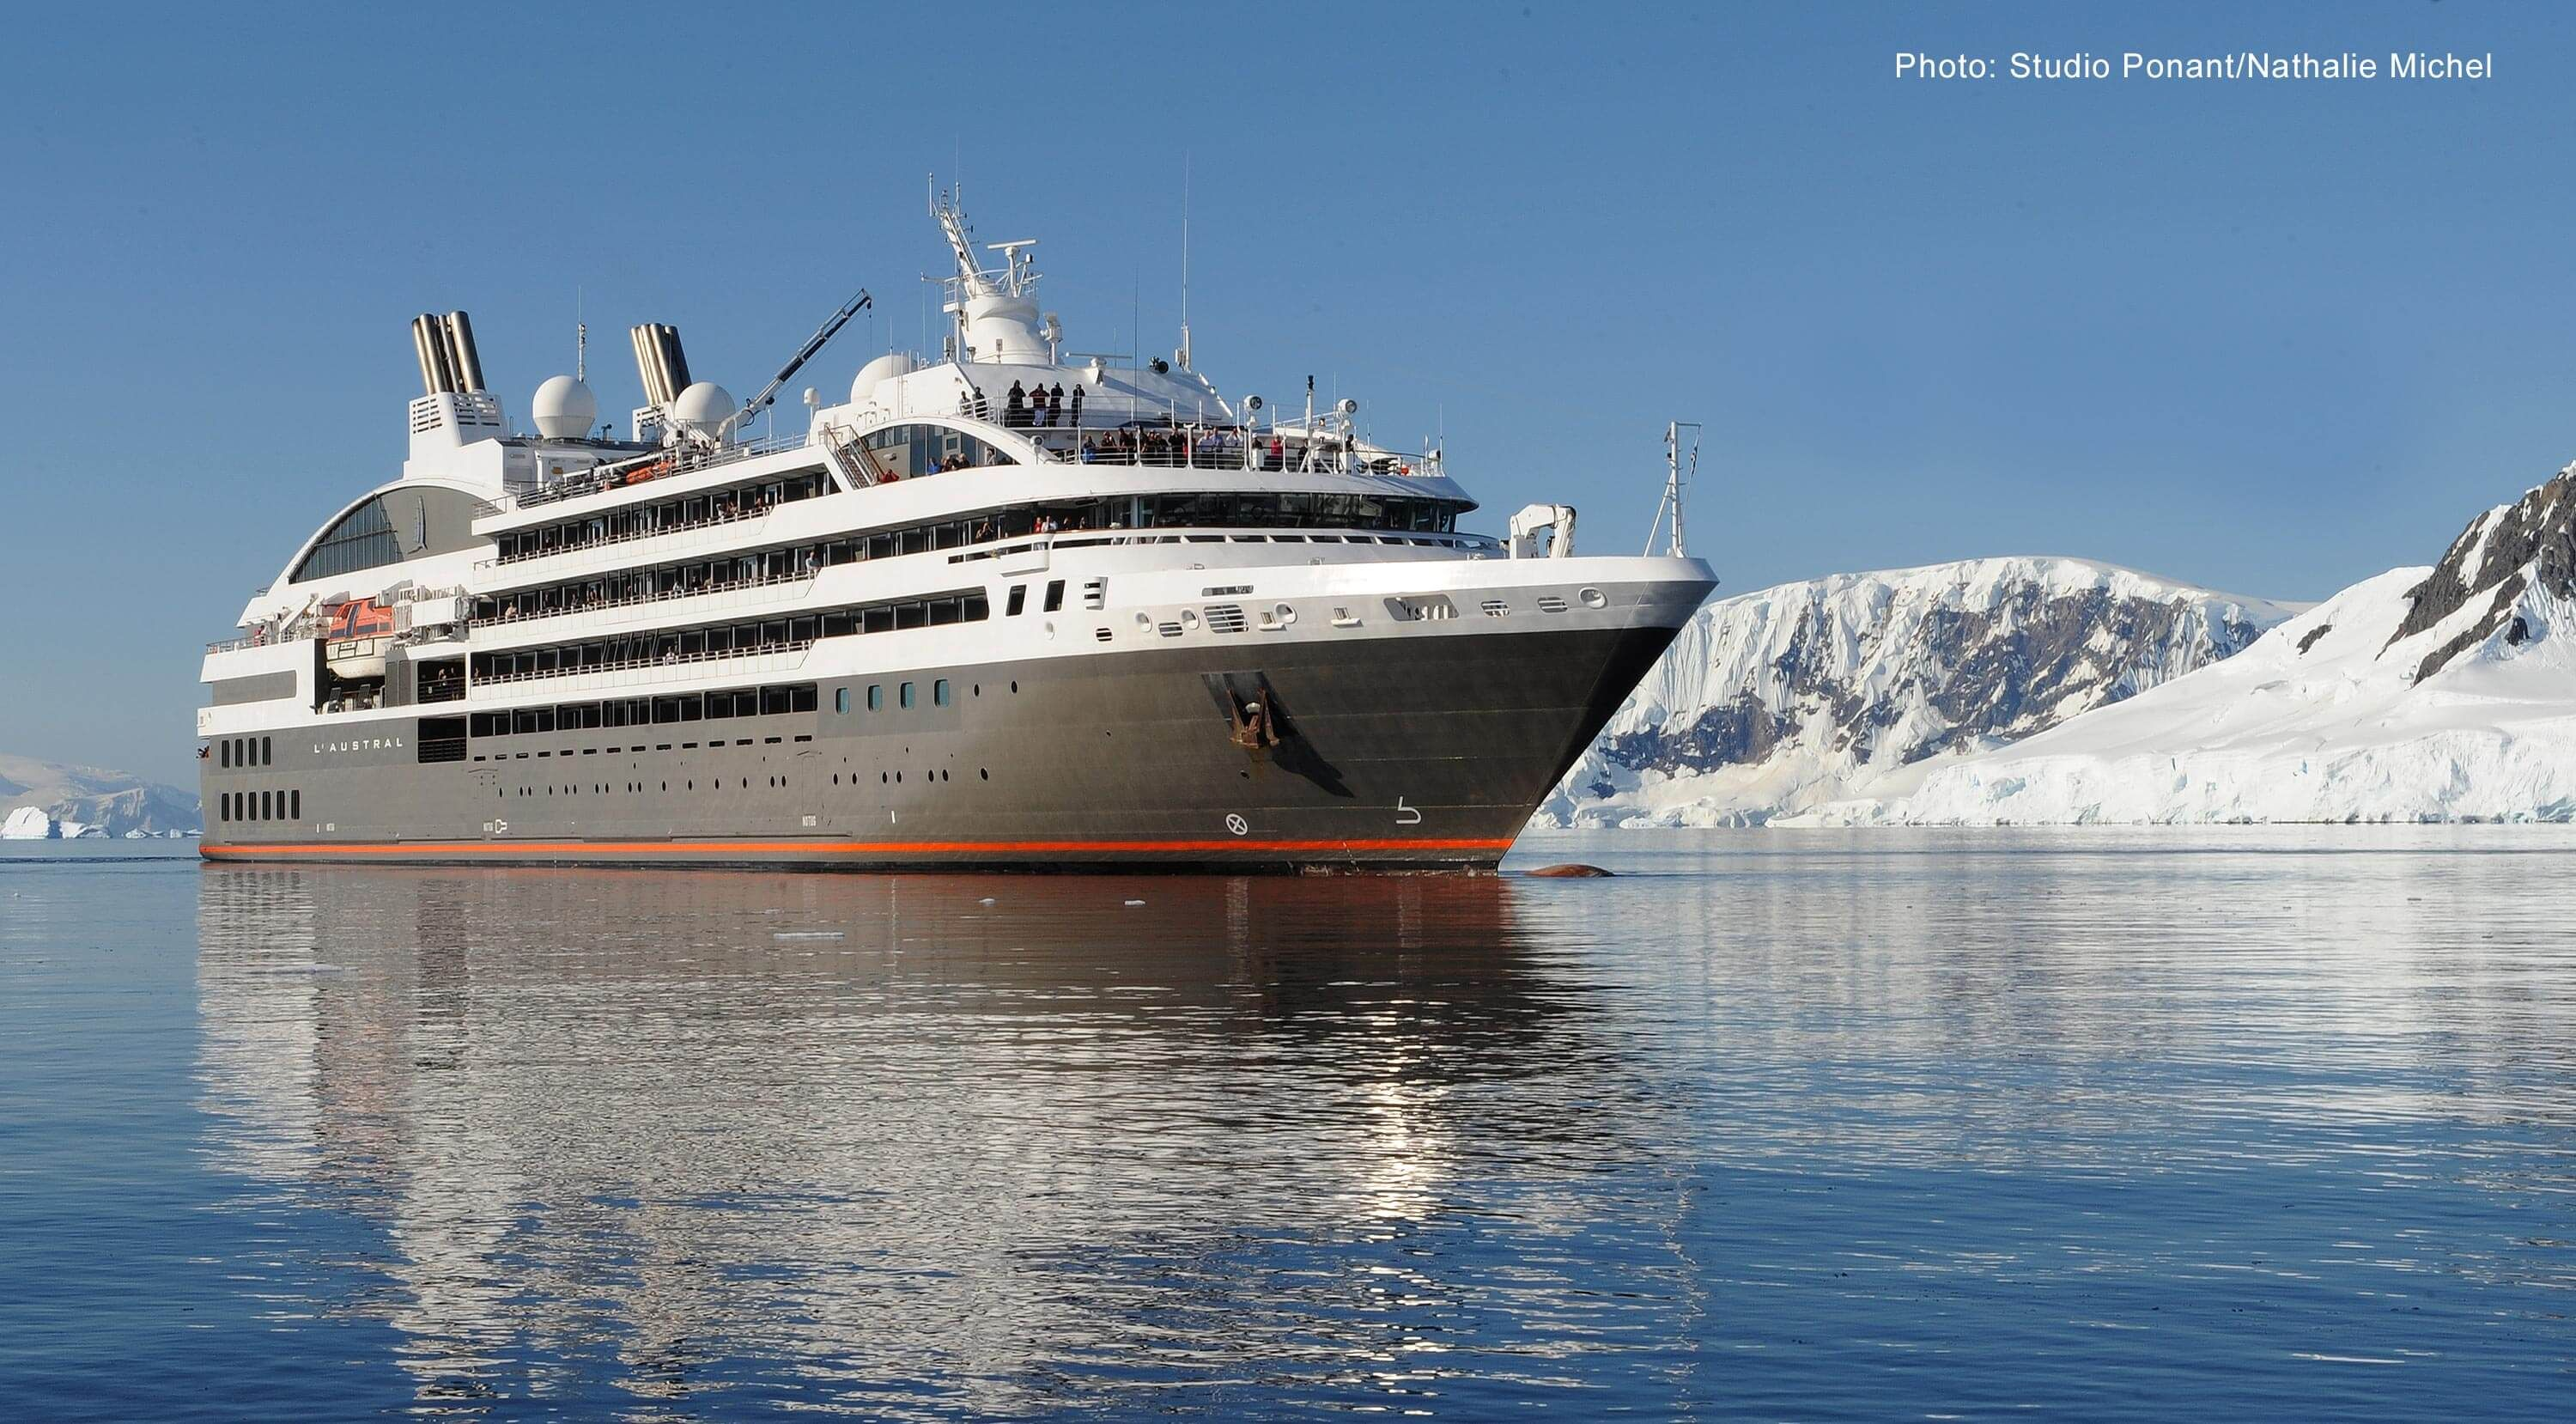 L Austral Cruise Ship On A Sunny Day In Alaskan Waters Photo